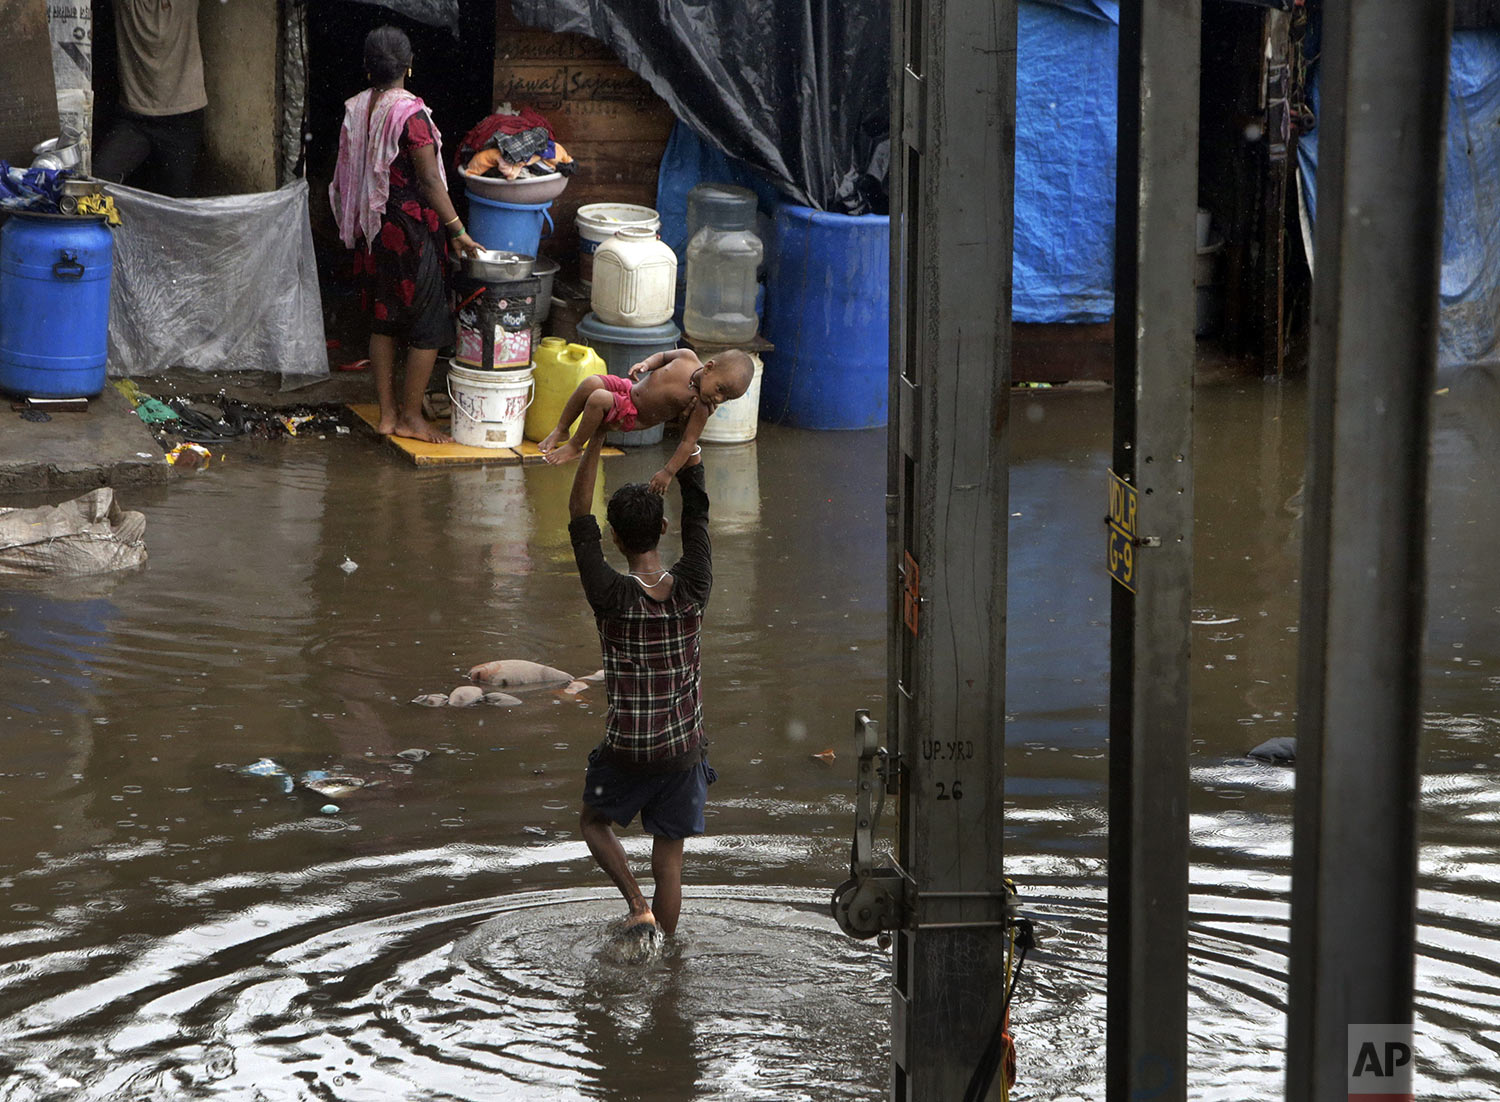 A man holds a child high above his head as he wades through a waterlogged street following heavy rains in Mumbai, India, July 2, 2019. (AP Photo/Rajanish Kakade)